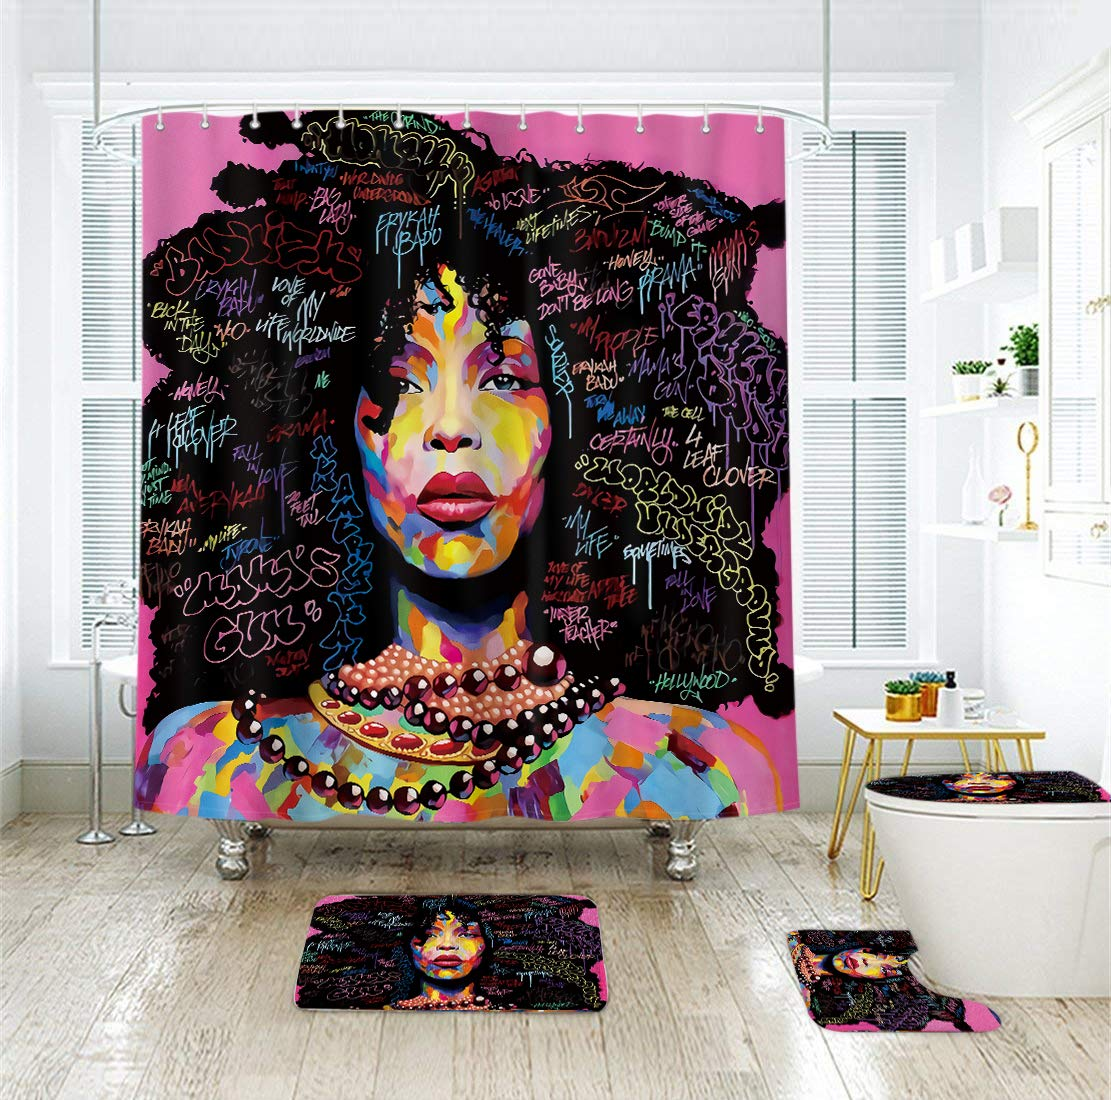 Riyidecor Afro African American Shower Curtain+3 Pieces Bathroom Set Rock Colorful Watercolor Black Hair Girl Lady Pink Trendsetter Polyester 72x72 Inch with Free Plastic Hooks 12-Pack